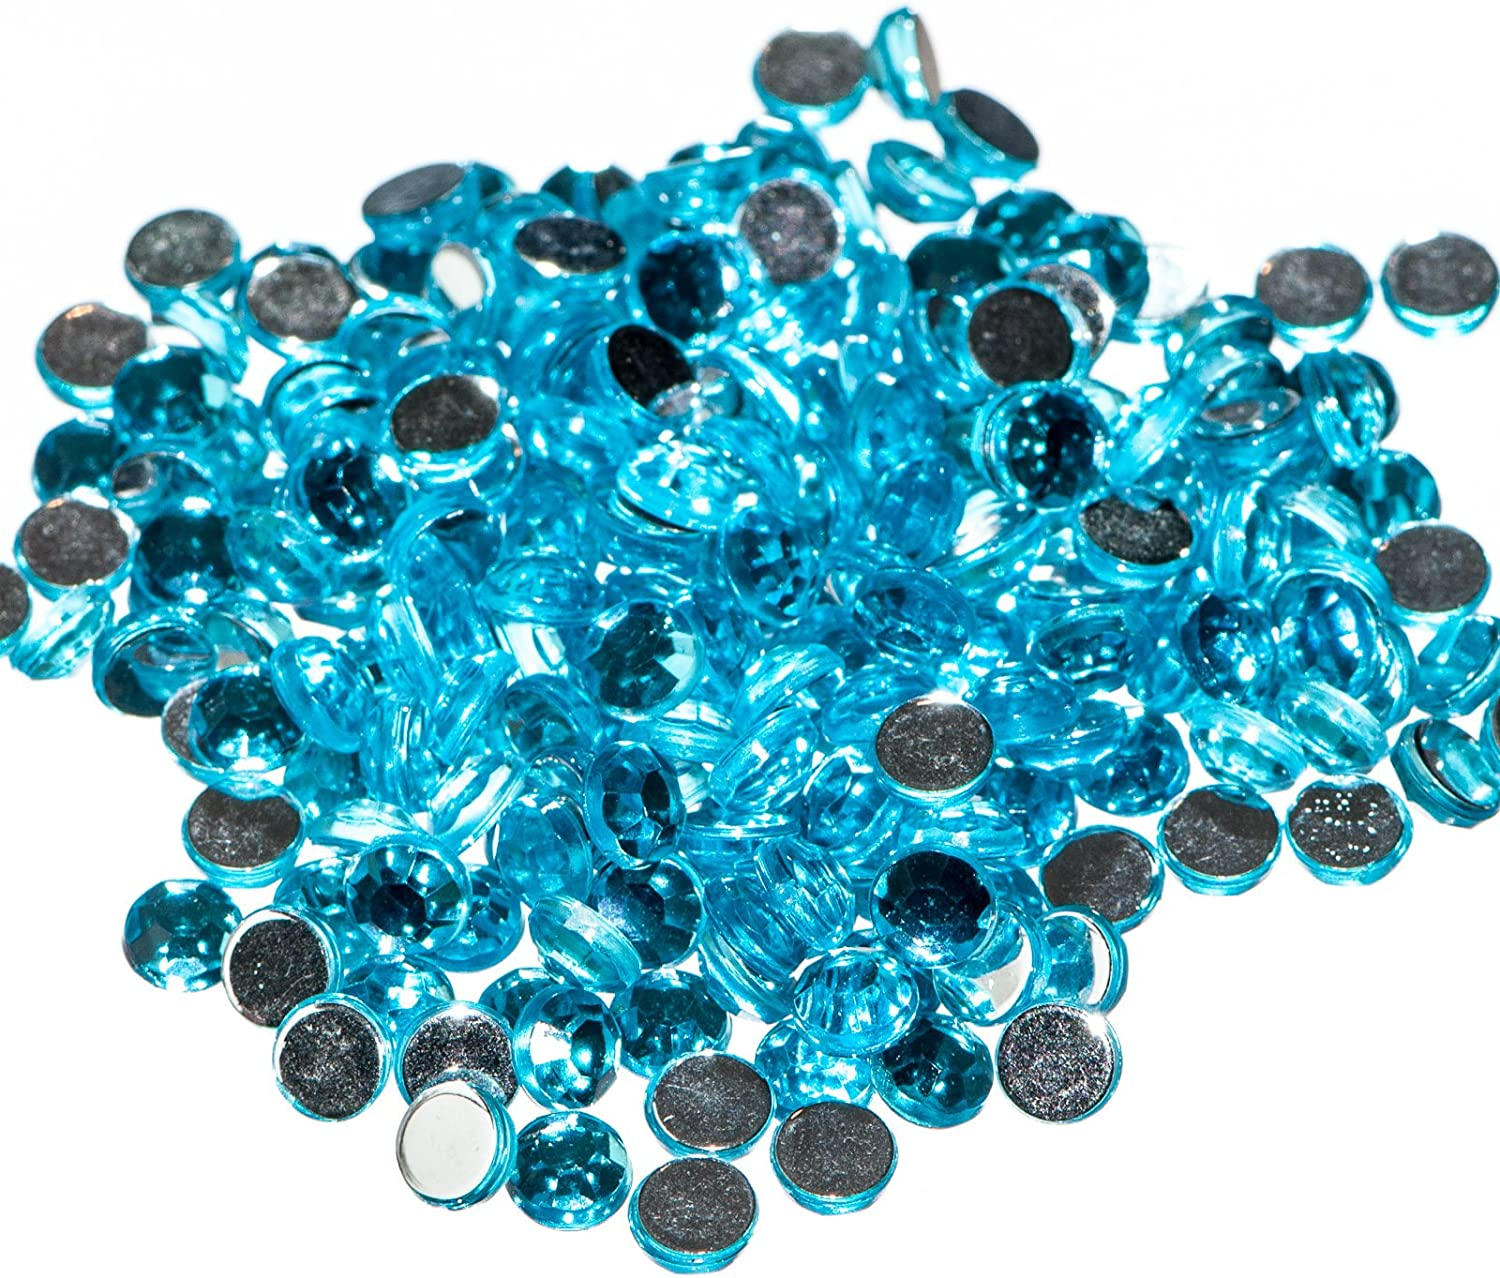 CRAFTS AQUA MARINE 4mm RESIN FLAT BACK RHINESTONES DIAMANTE GEMS FOR NAIL ART